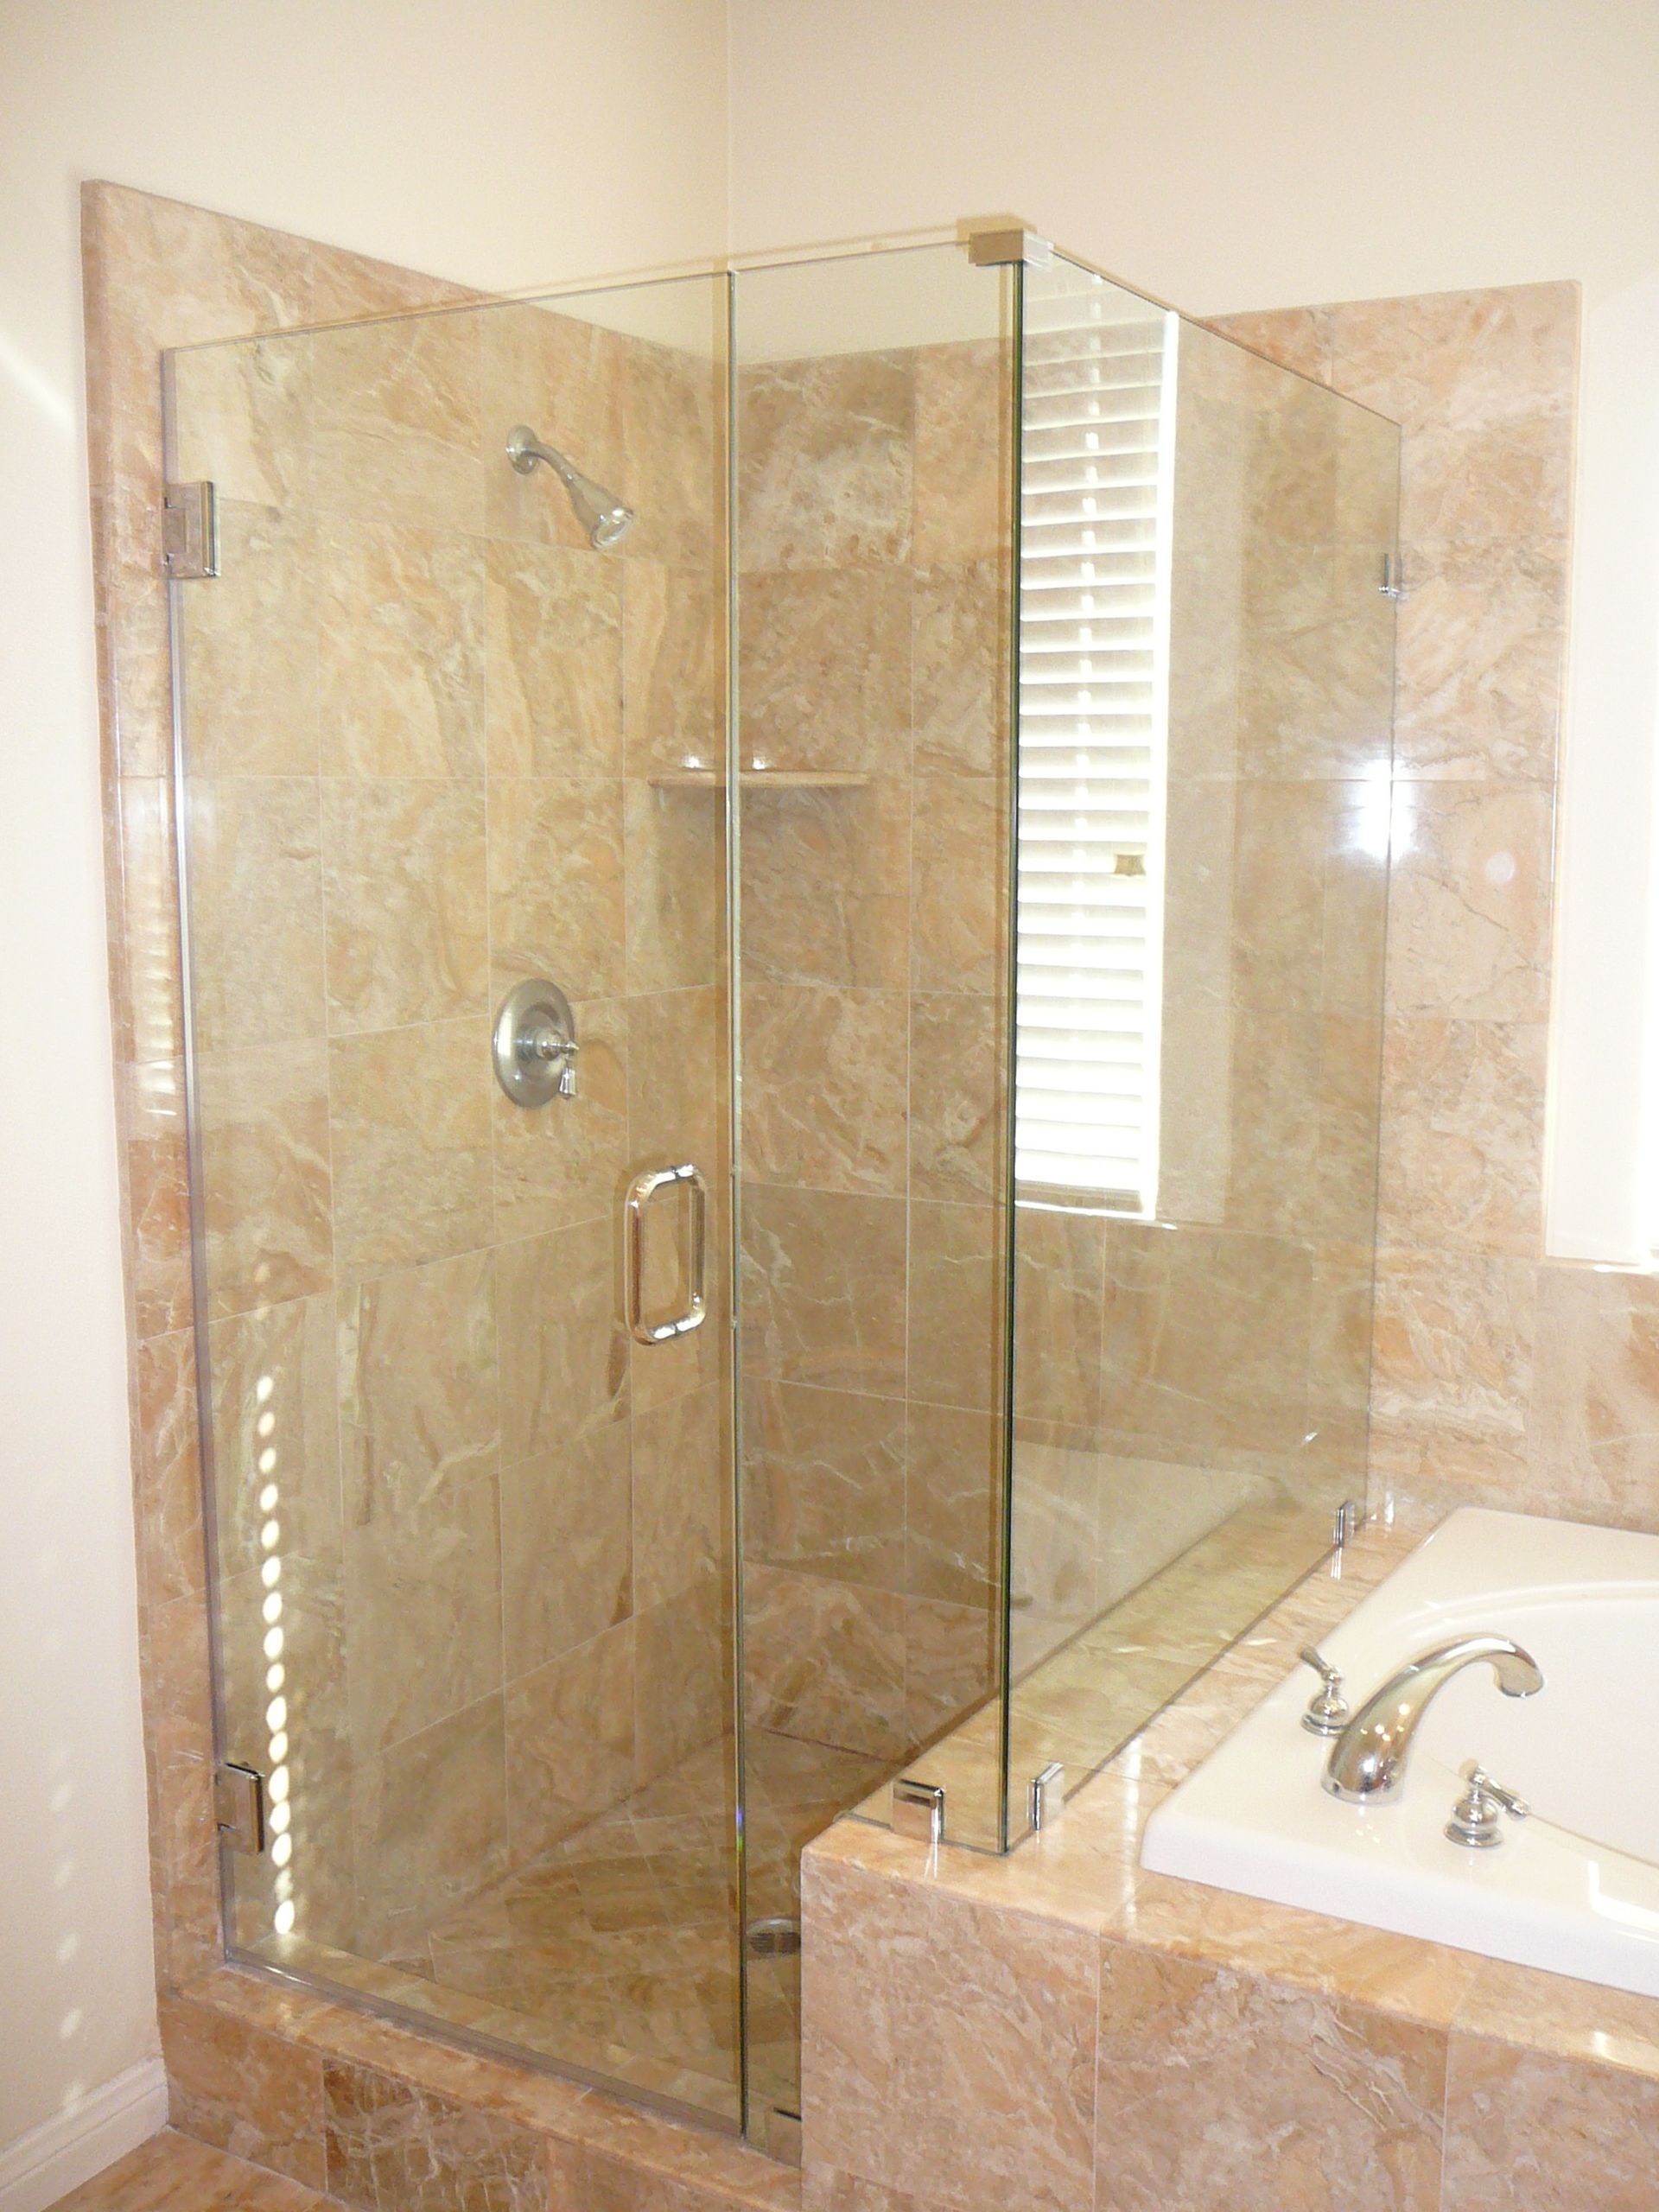 Custom Frameless 90 Shower Enclosure With A Notch Panel Shower Enclosure Frameless Shower Enclosures Farmhouse Shower